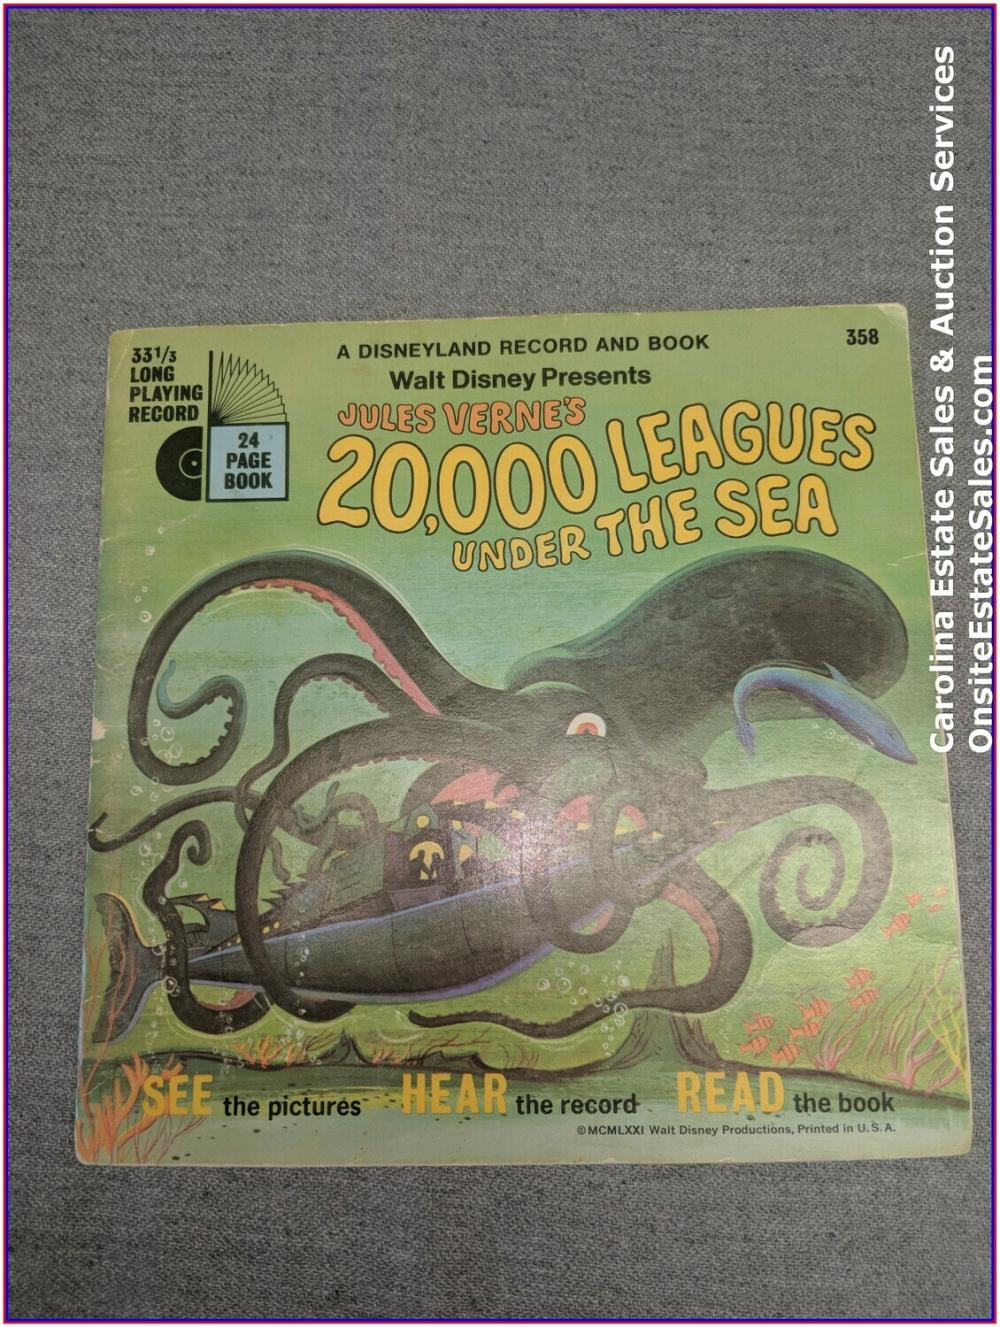 20,000 Leagues under the Sea - Book & Record